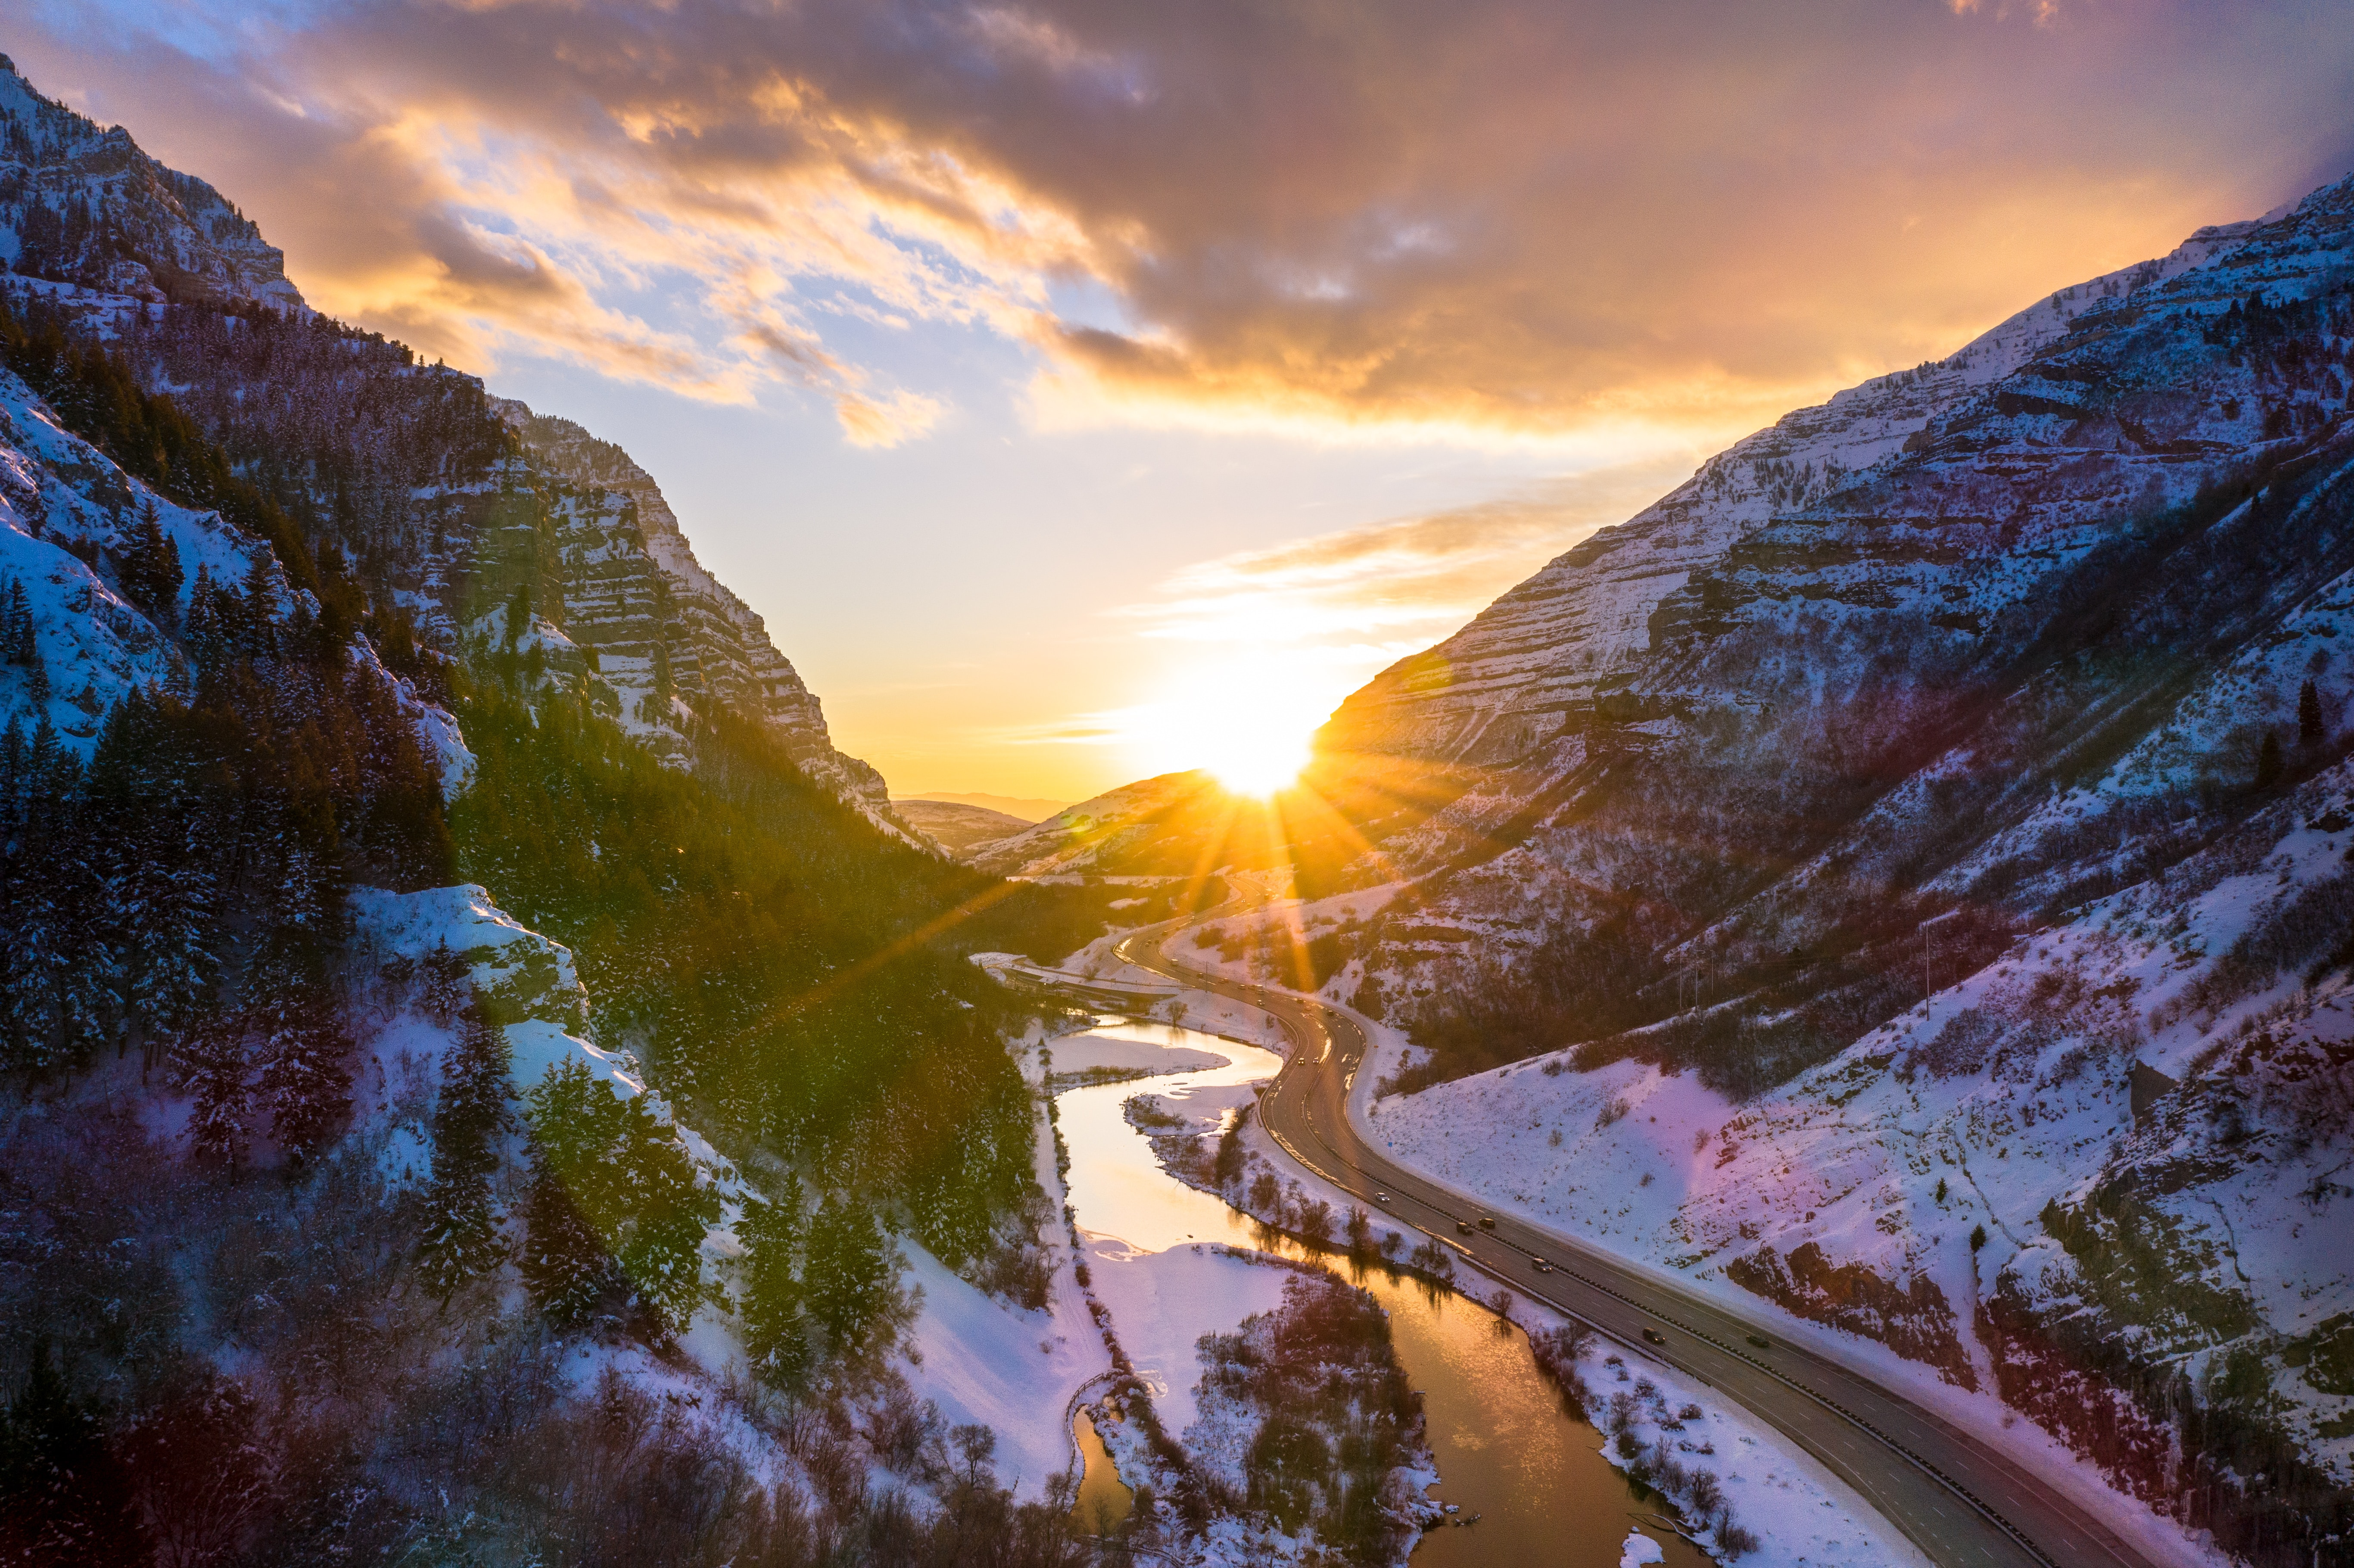 155605 download wallpaper Nature, Road, Rivers, Mountains, Sun, Landscape screensavers and pictures for free